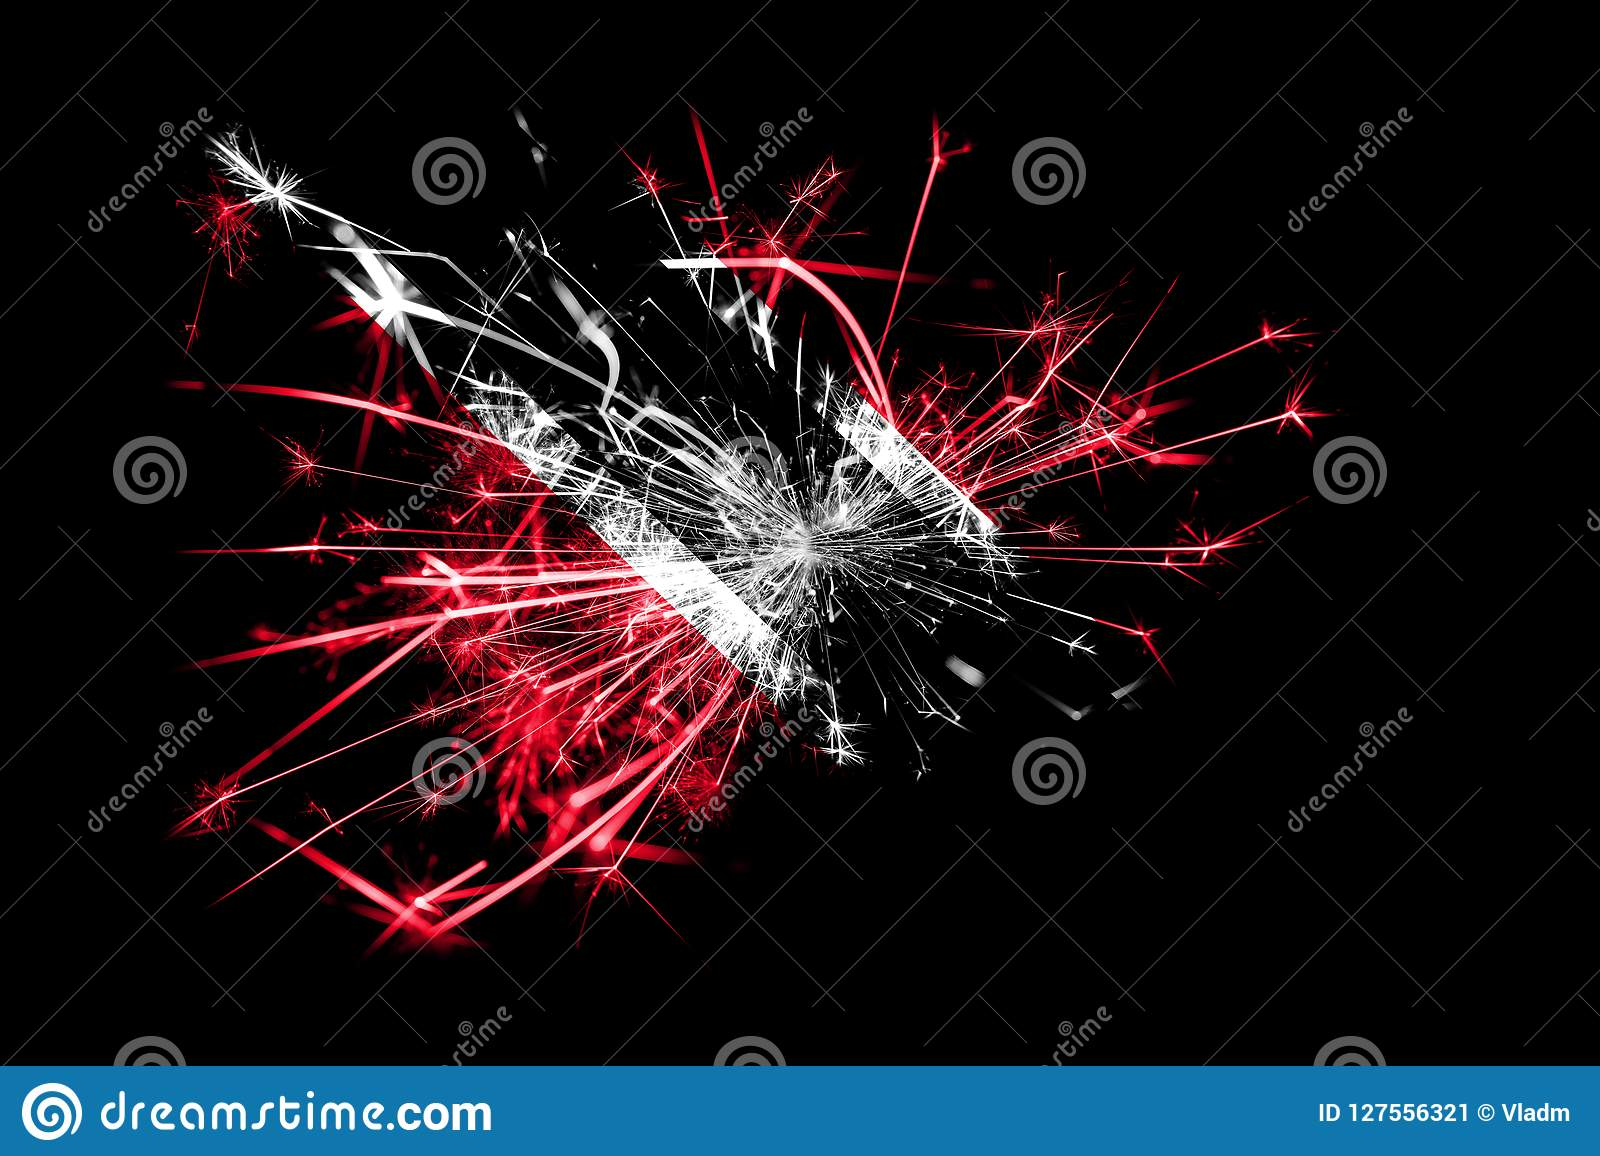 Christmas Party 2019 Clipart.Trinidad And Tobago Fireworks Sparkling Flag New Year 2019